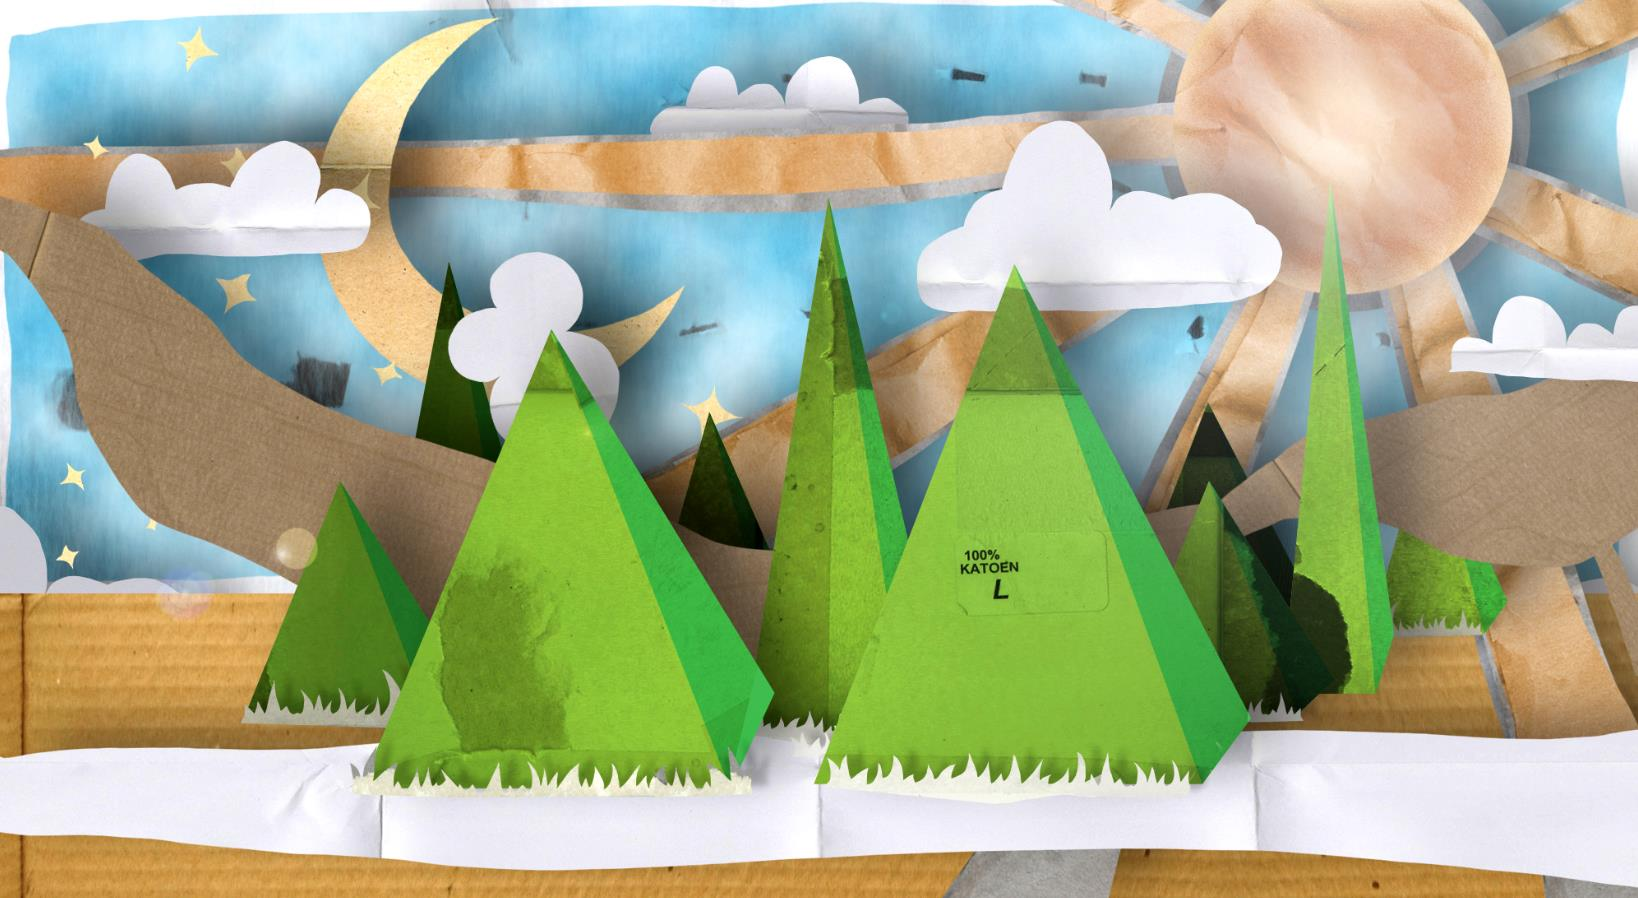 Cardboard kingdom.  Abstract landscape composition, created with cardboard textures - RvE 2010  - Mac Osx, Adobe Photoshop